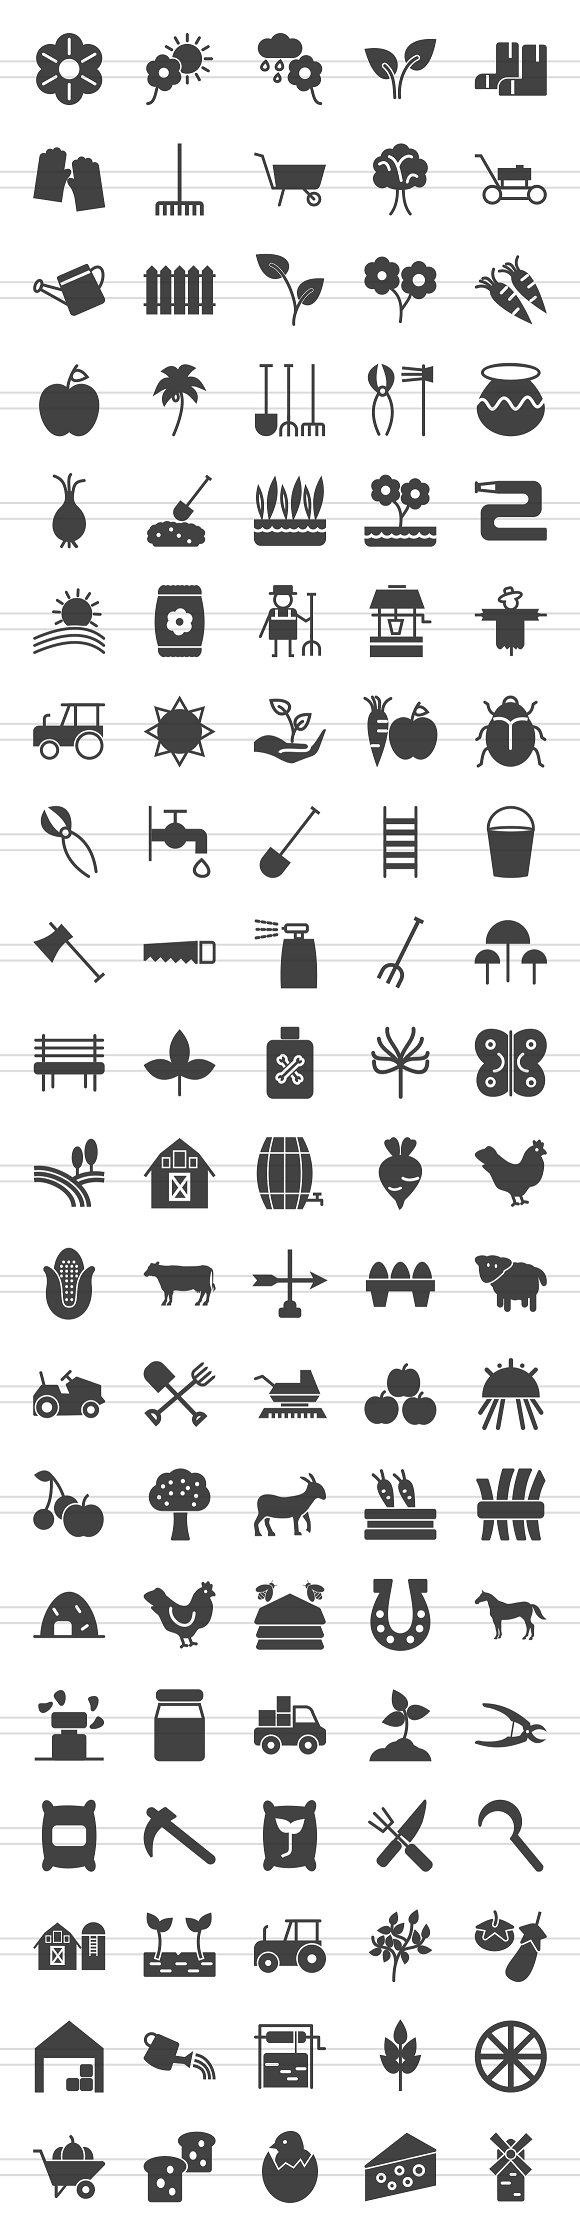 100 Farm & Gardening Glyph Icons in Graphics - product preview 1